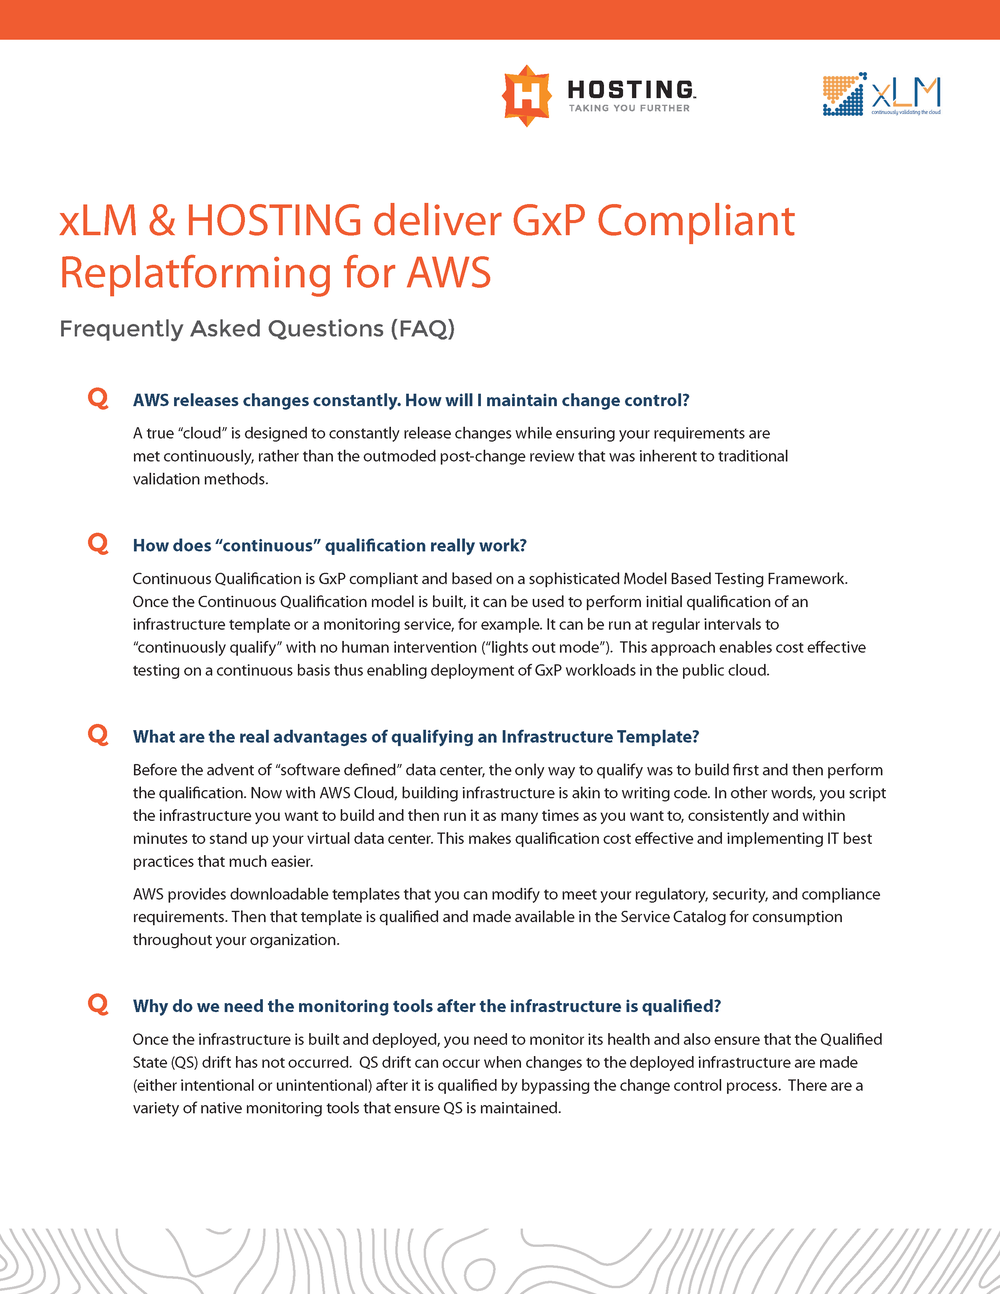 xLM-Hosting_Continuous_Qualification_FAQs_Page_1.png